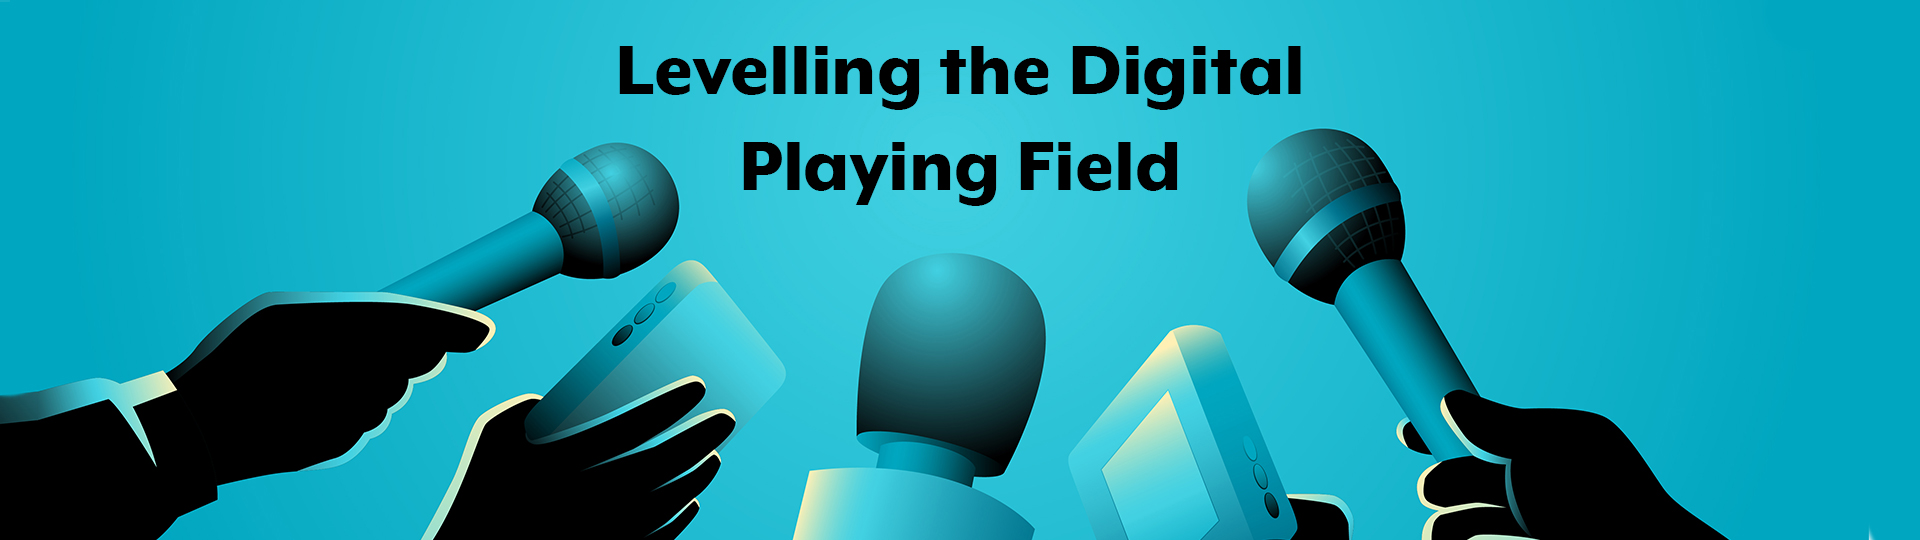 Levelling-the-Digital-Playing-Field-header2